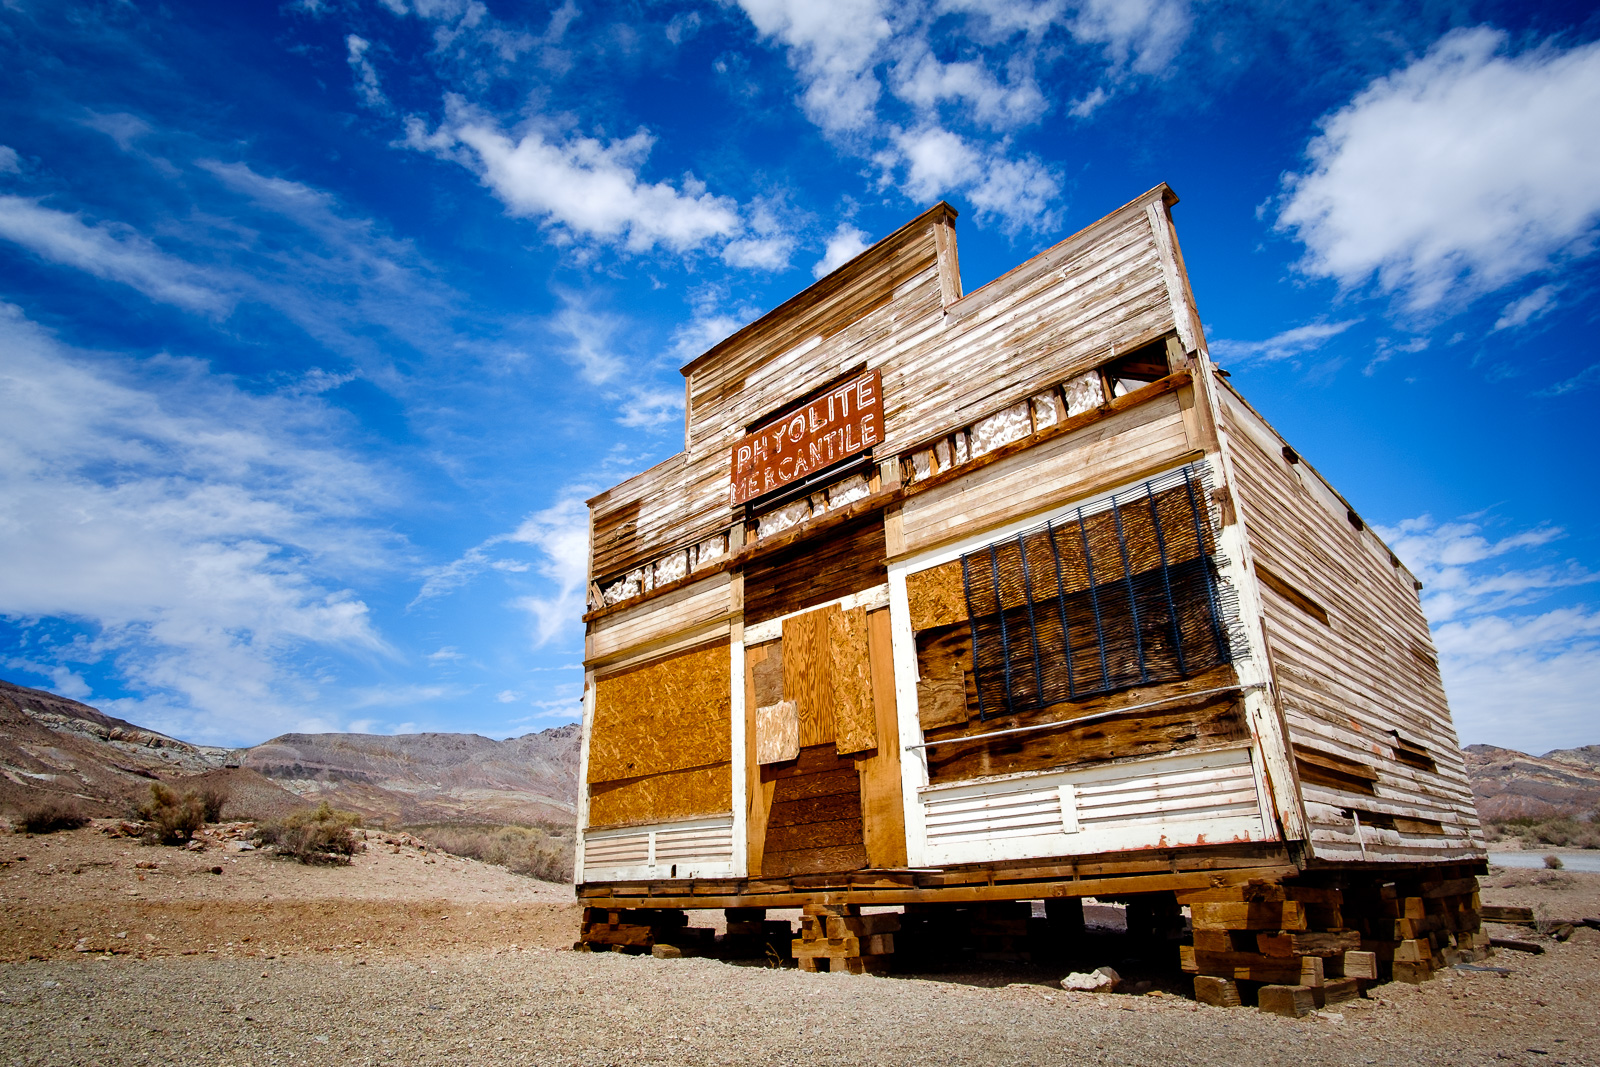 Ghost Town Rhyolite - Abandoned General Store, USA